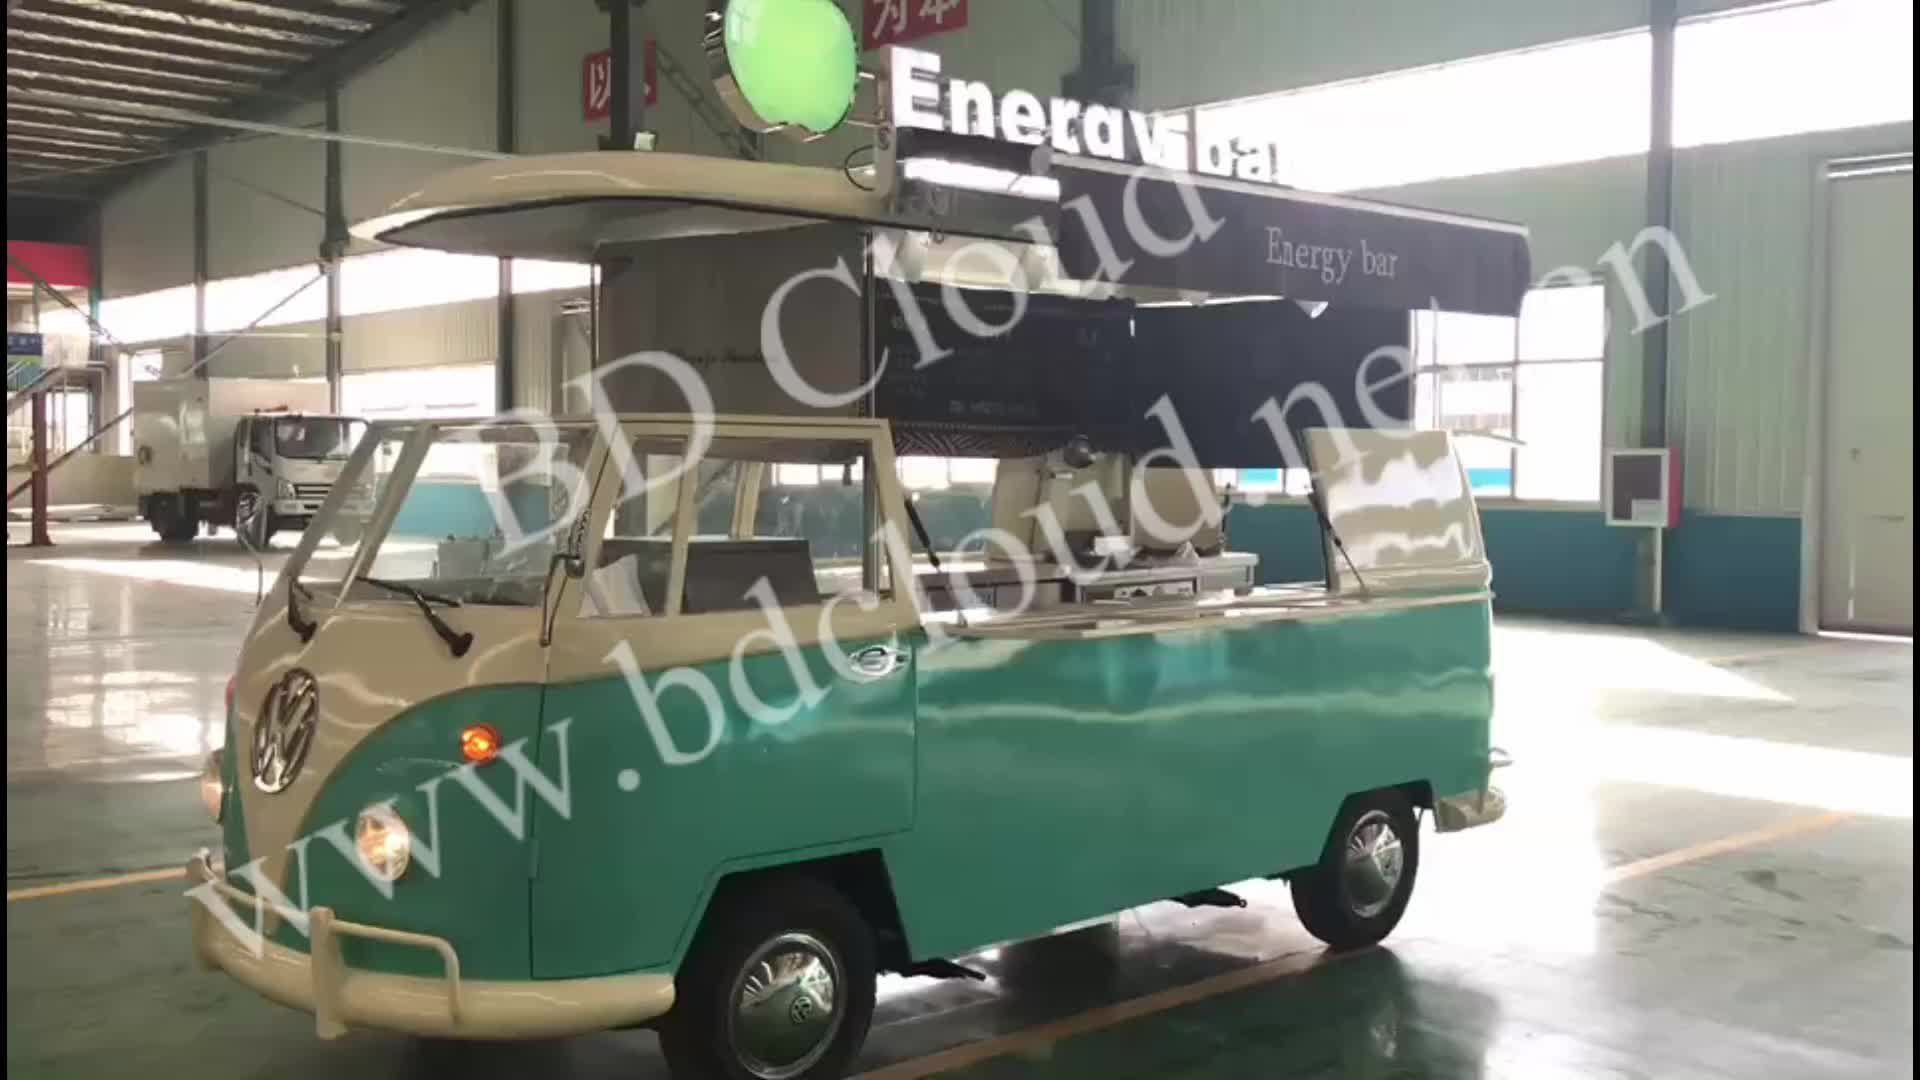 Volkswagen Classic Truck Used For Fix Shop - Buy Classic Trucks For ...